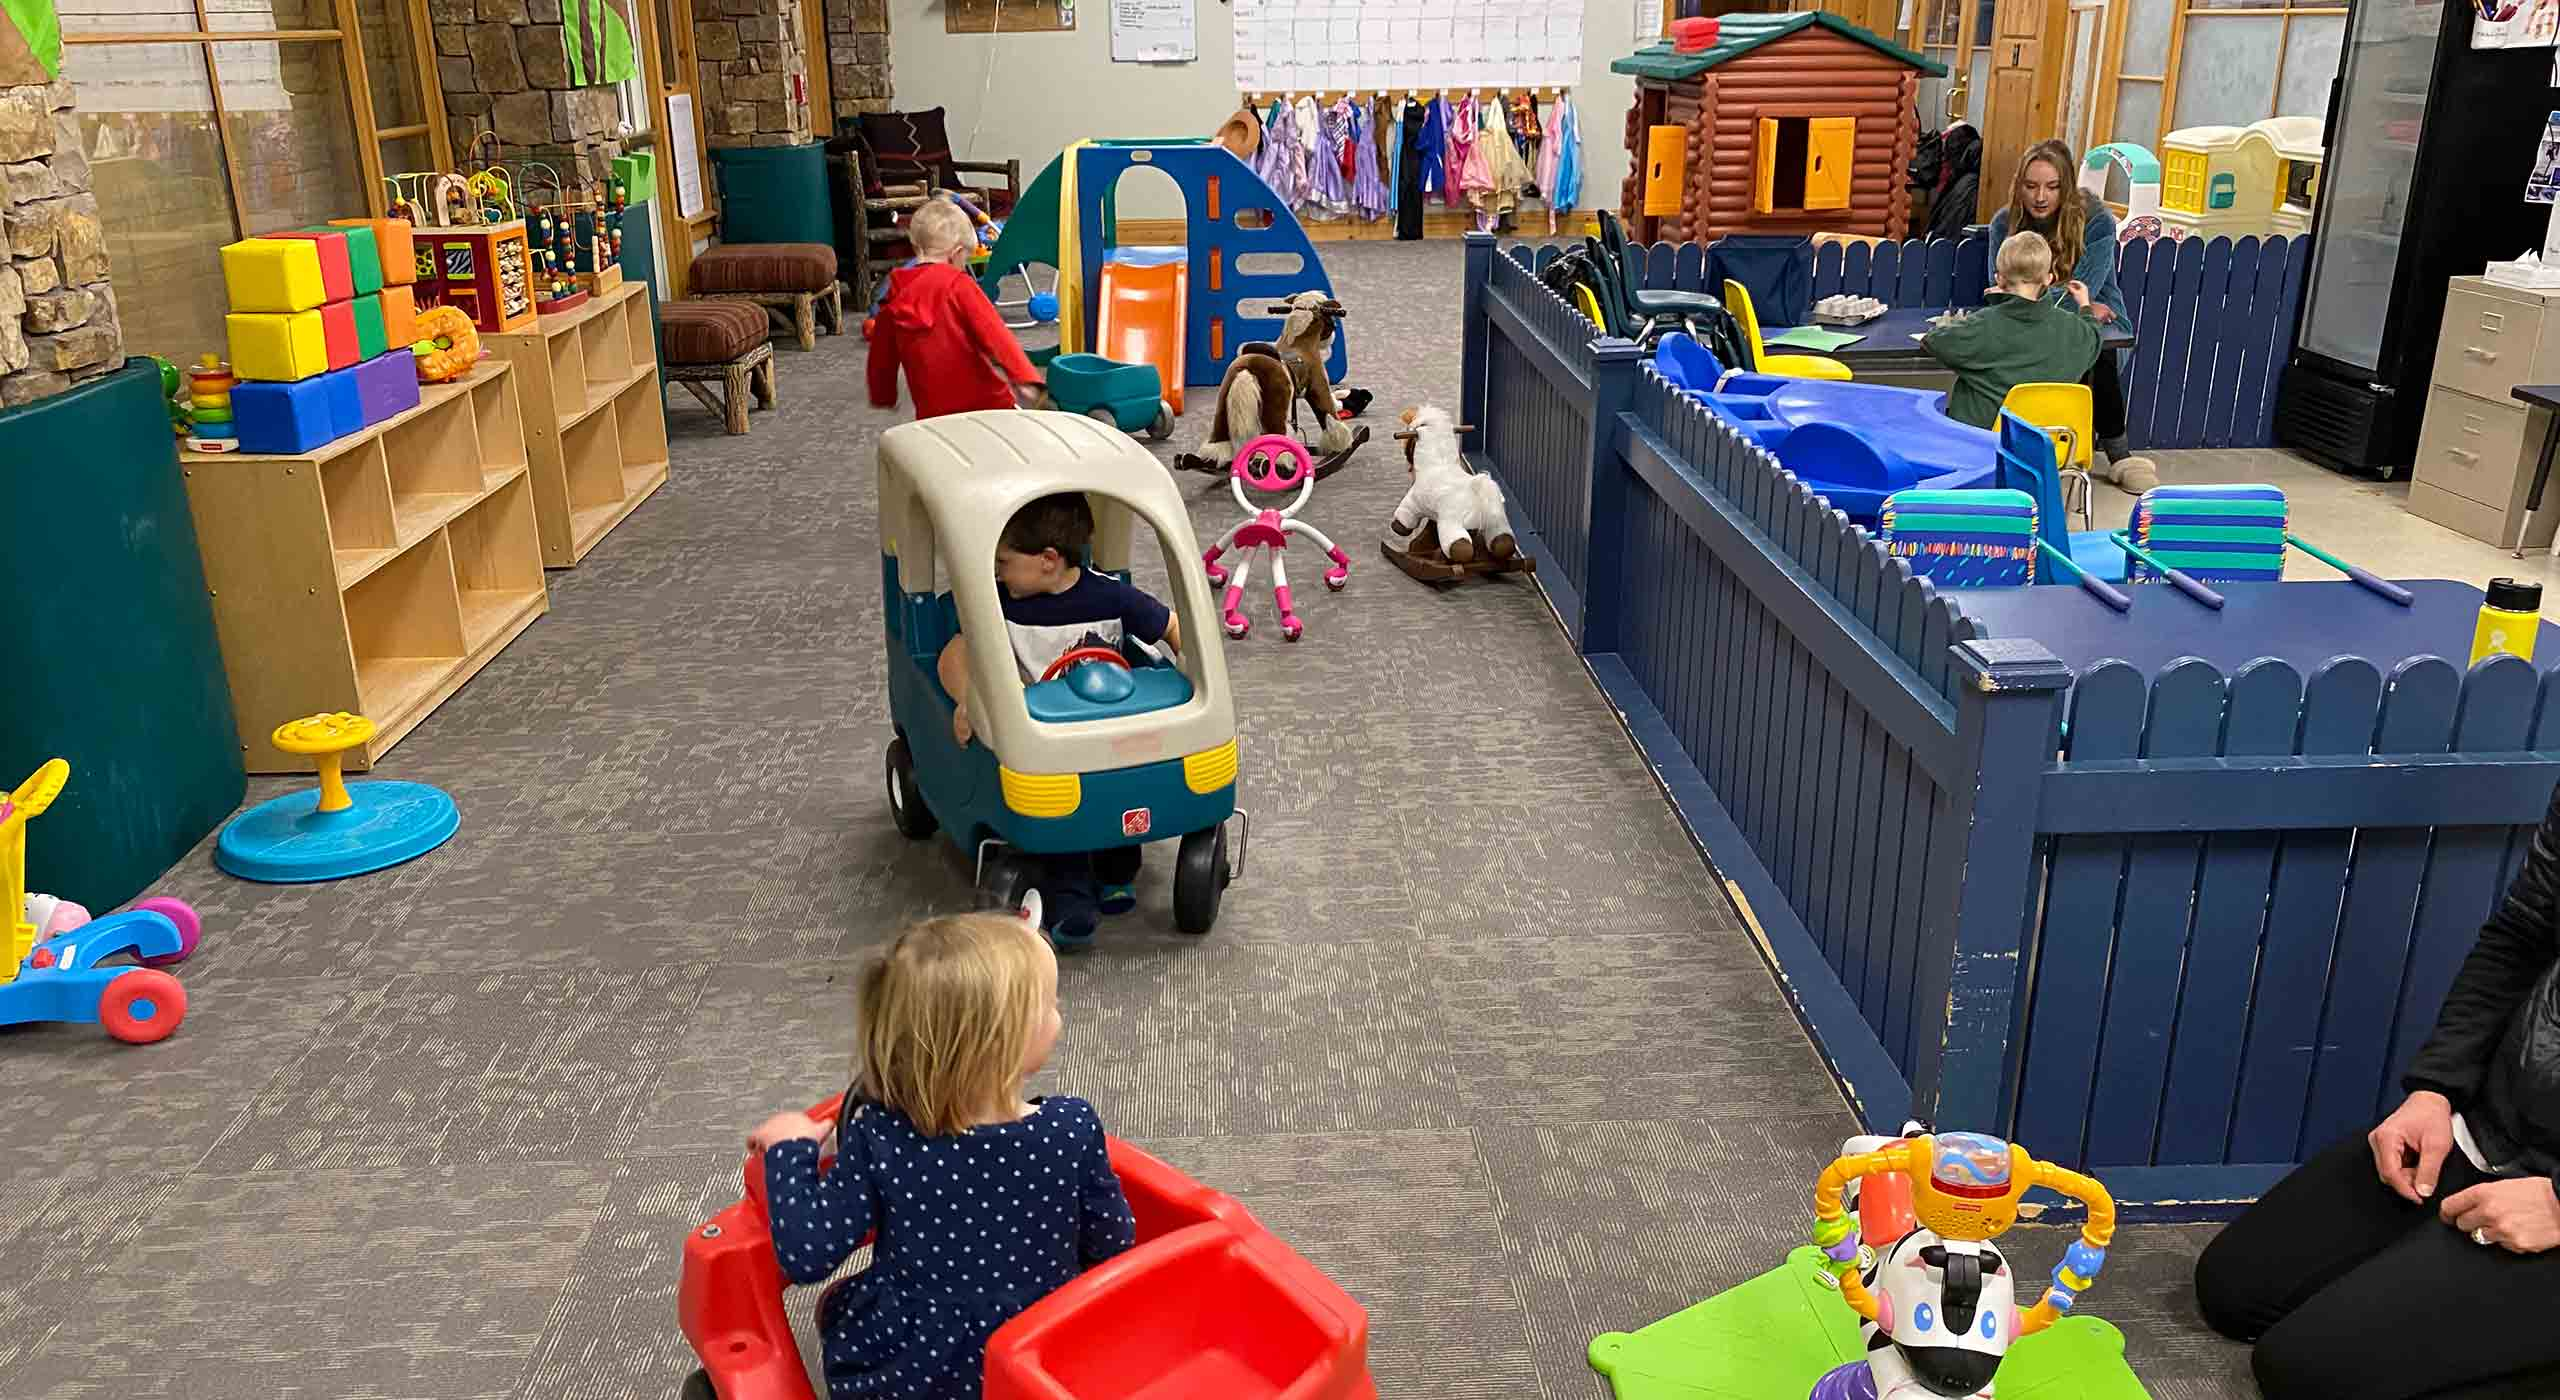 Cubs Camp Nursery Kids Playing Inside